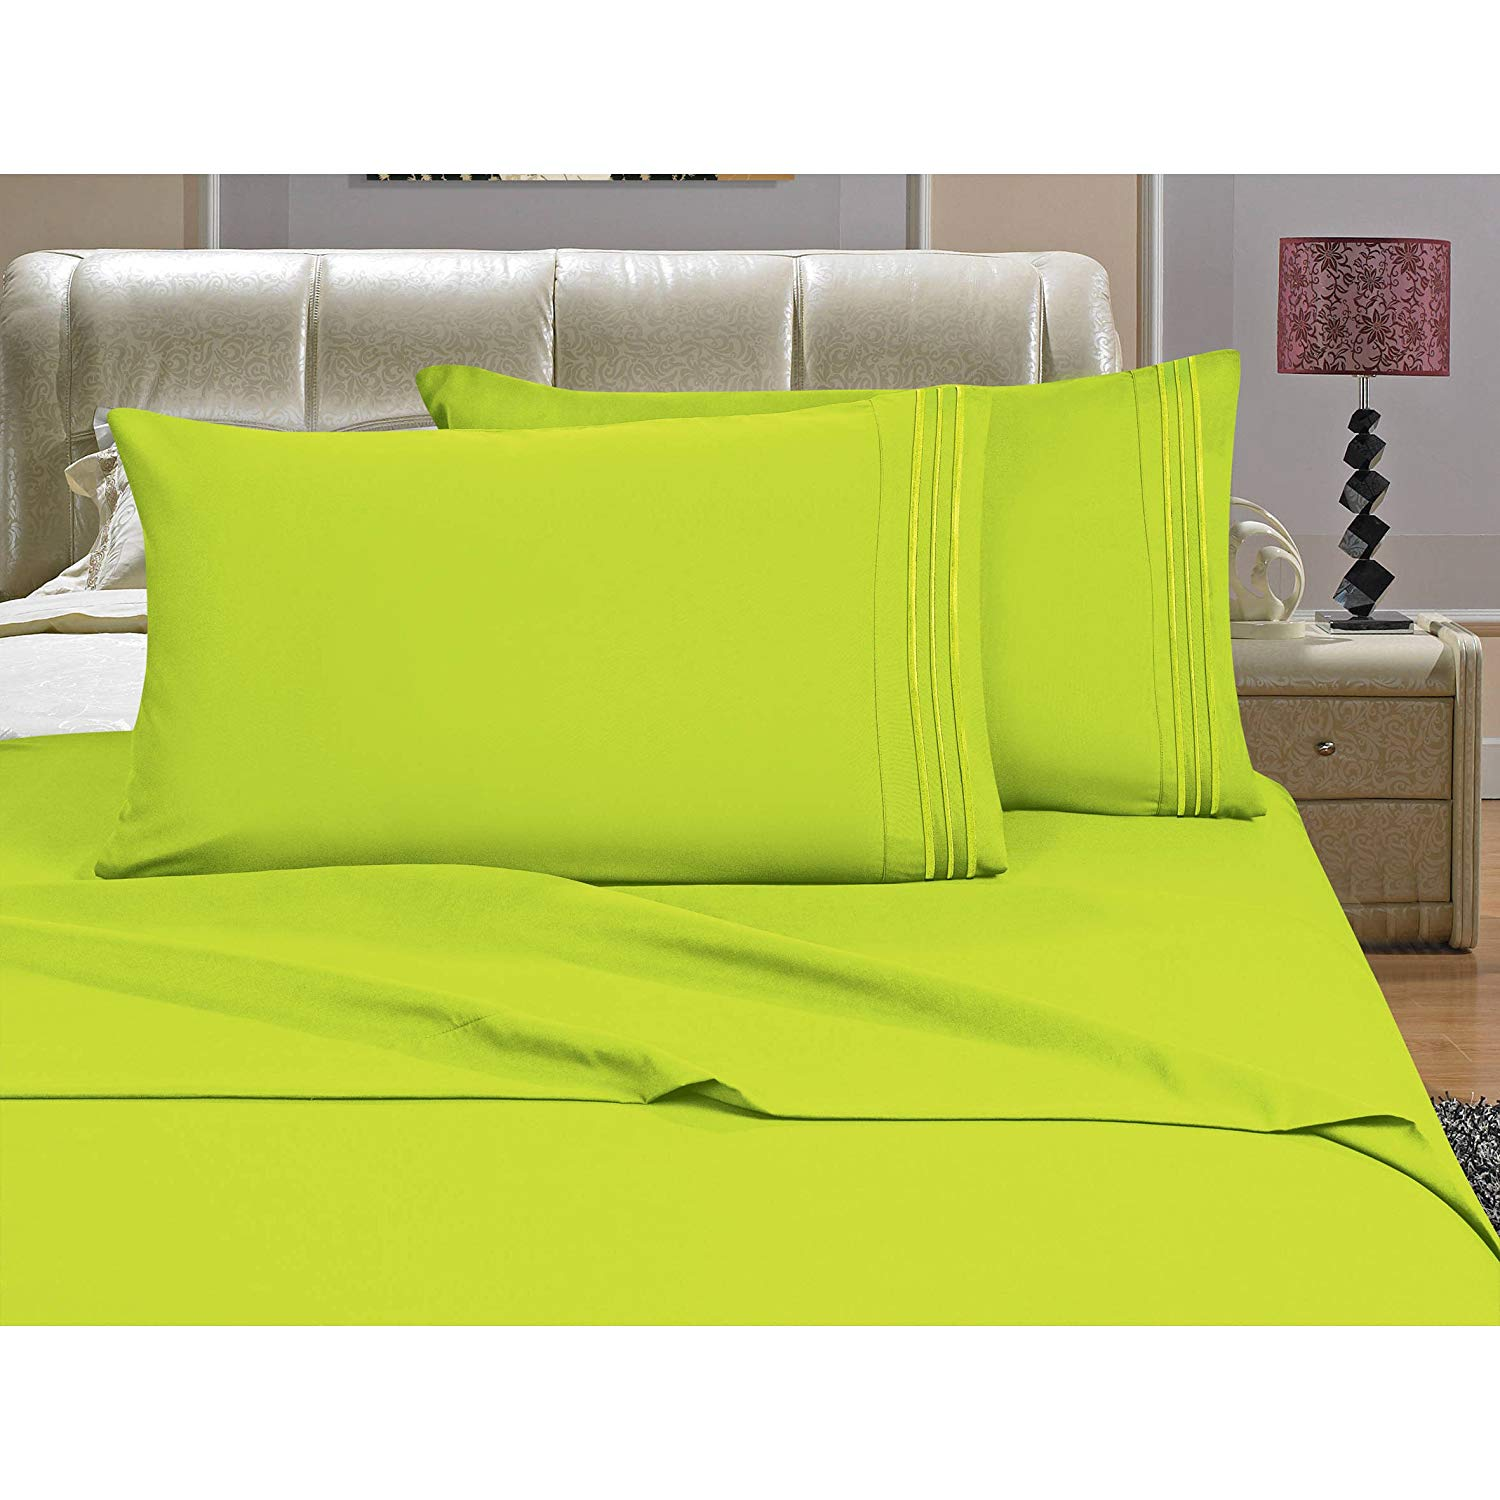 D&A 4 Piece Beautiful Lime Green Full Sheet Set, Deep Pocket Bedding Embroidered Stripe Comfortable Chic Elegant Solid Classic Breathable Soft Cozy Luxurious, Microfiber, Polyester